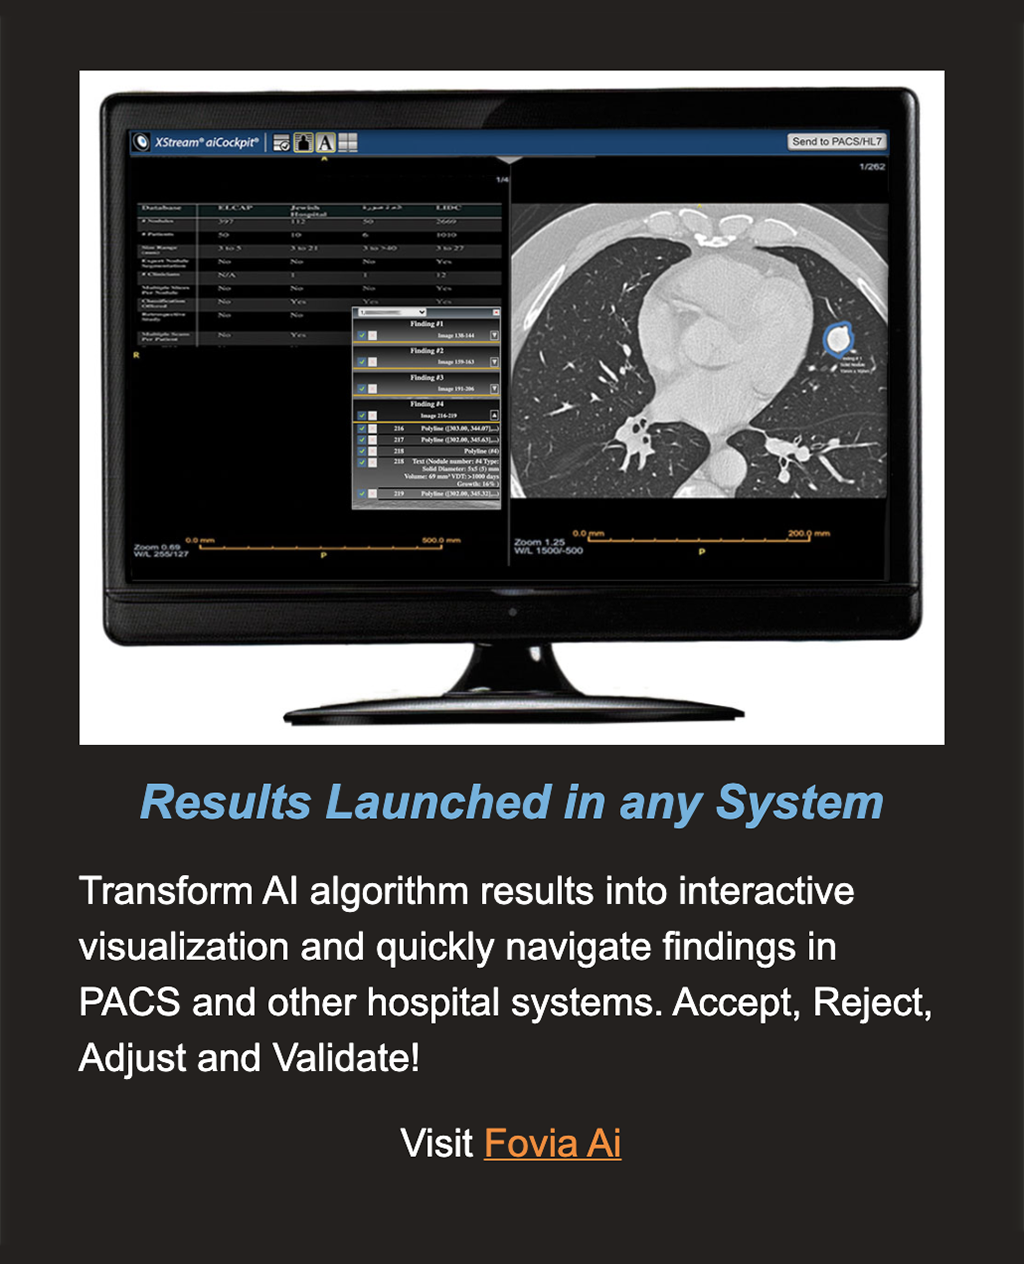 Results Launched in Any System